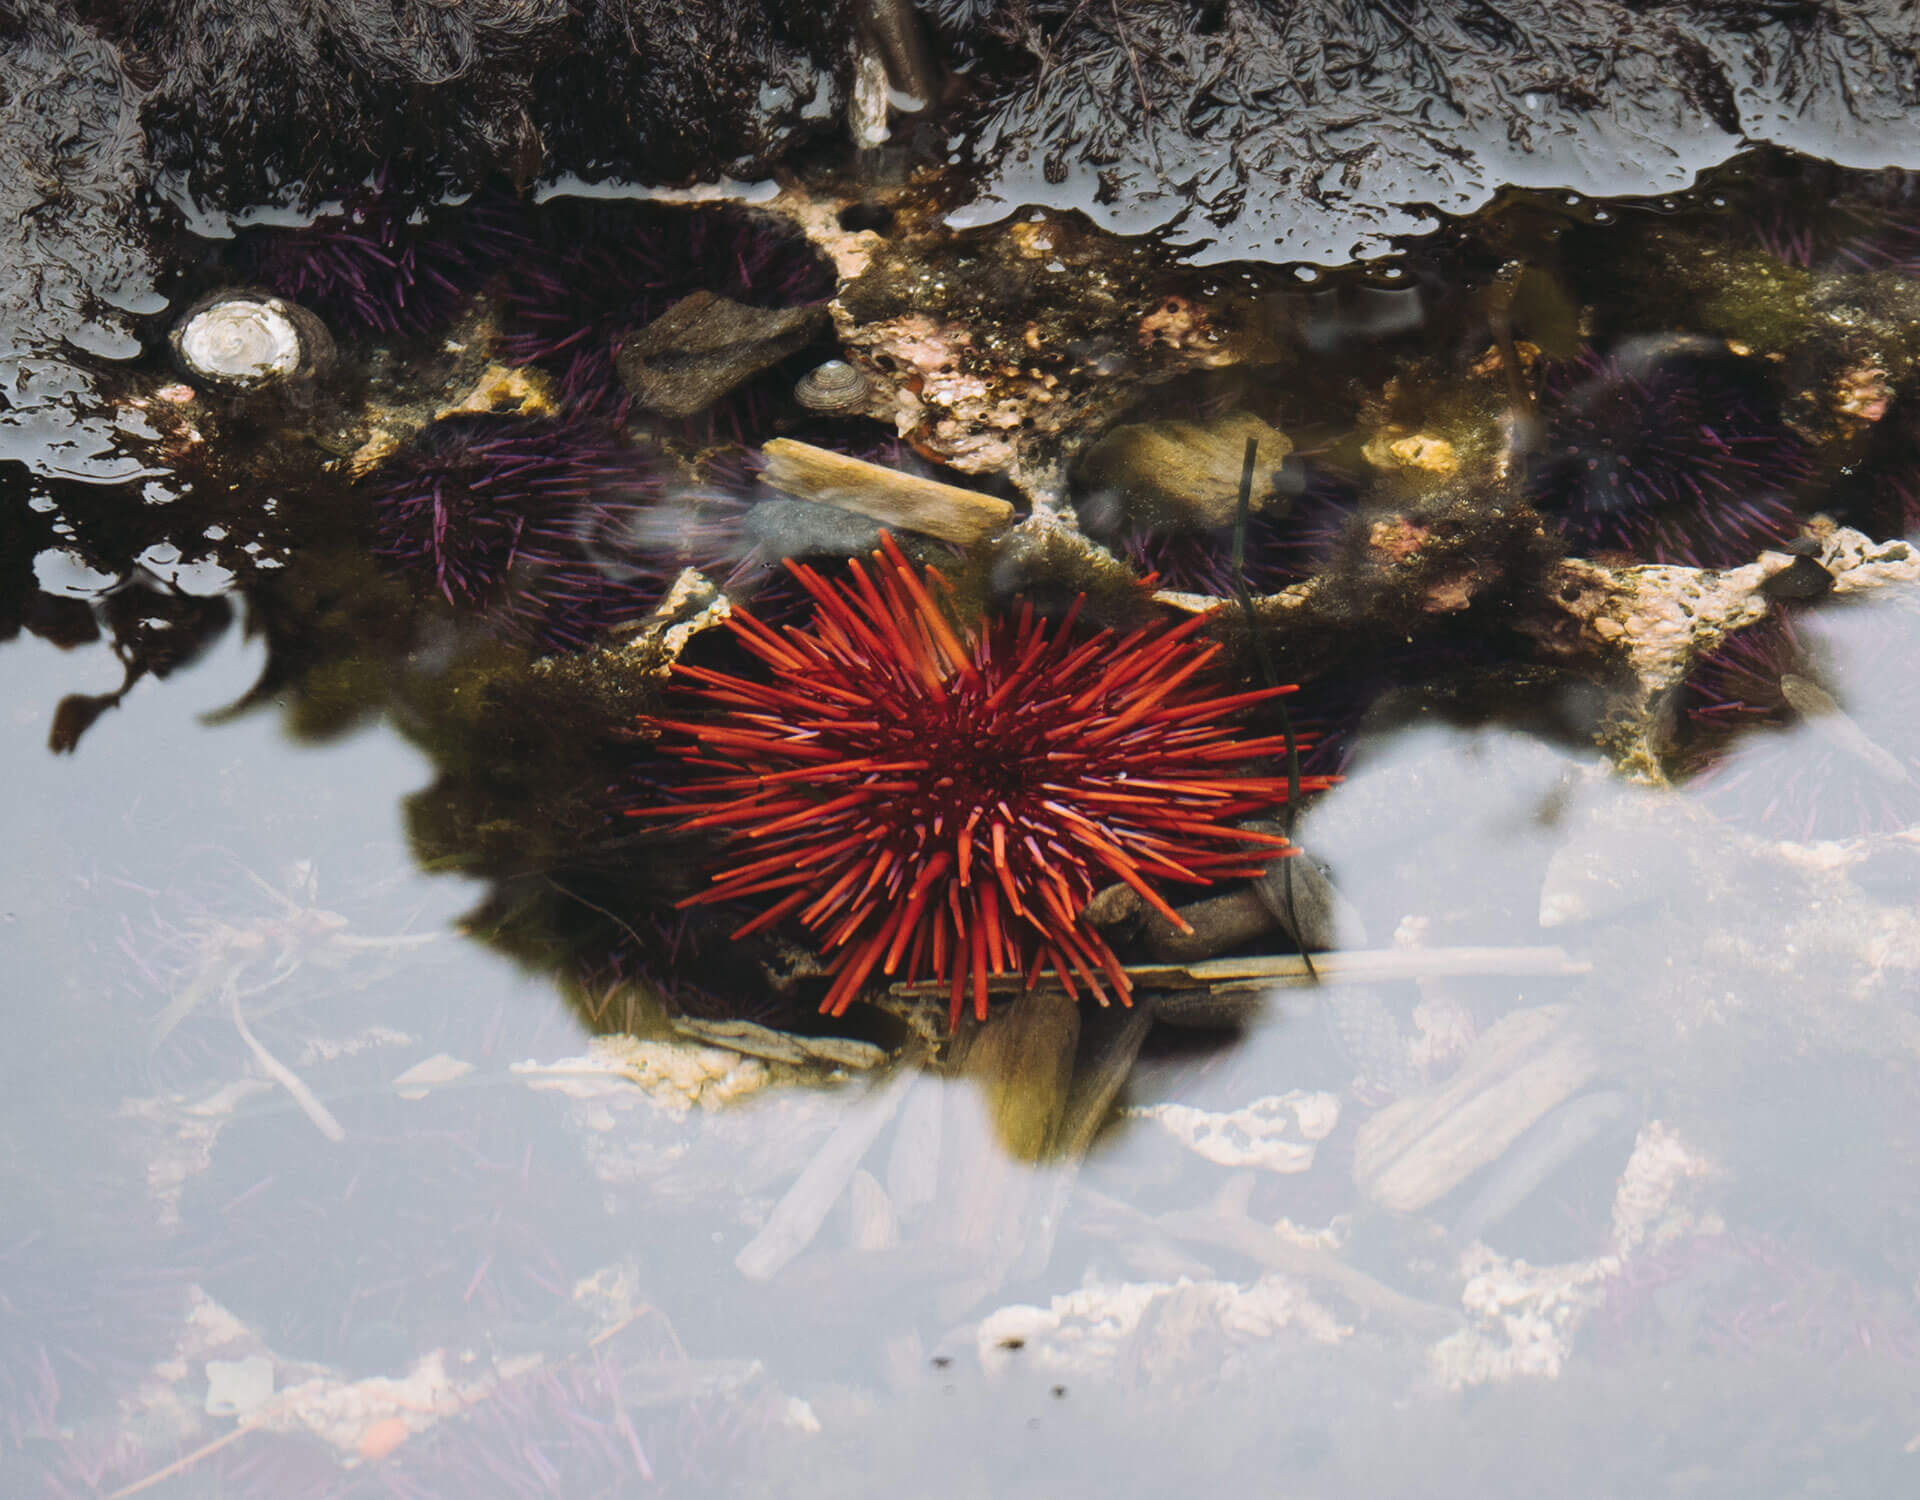 Sea urchins at the Yaquina Head Marine Garden.